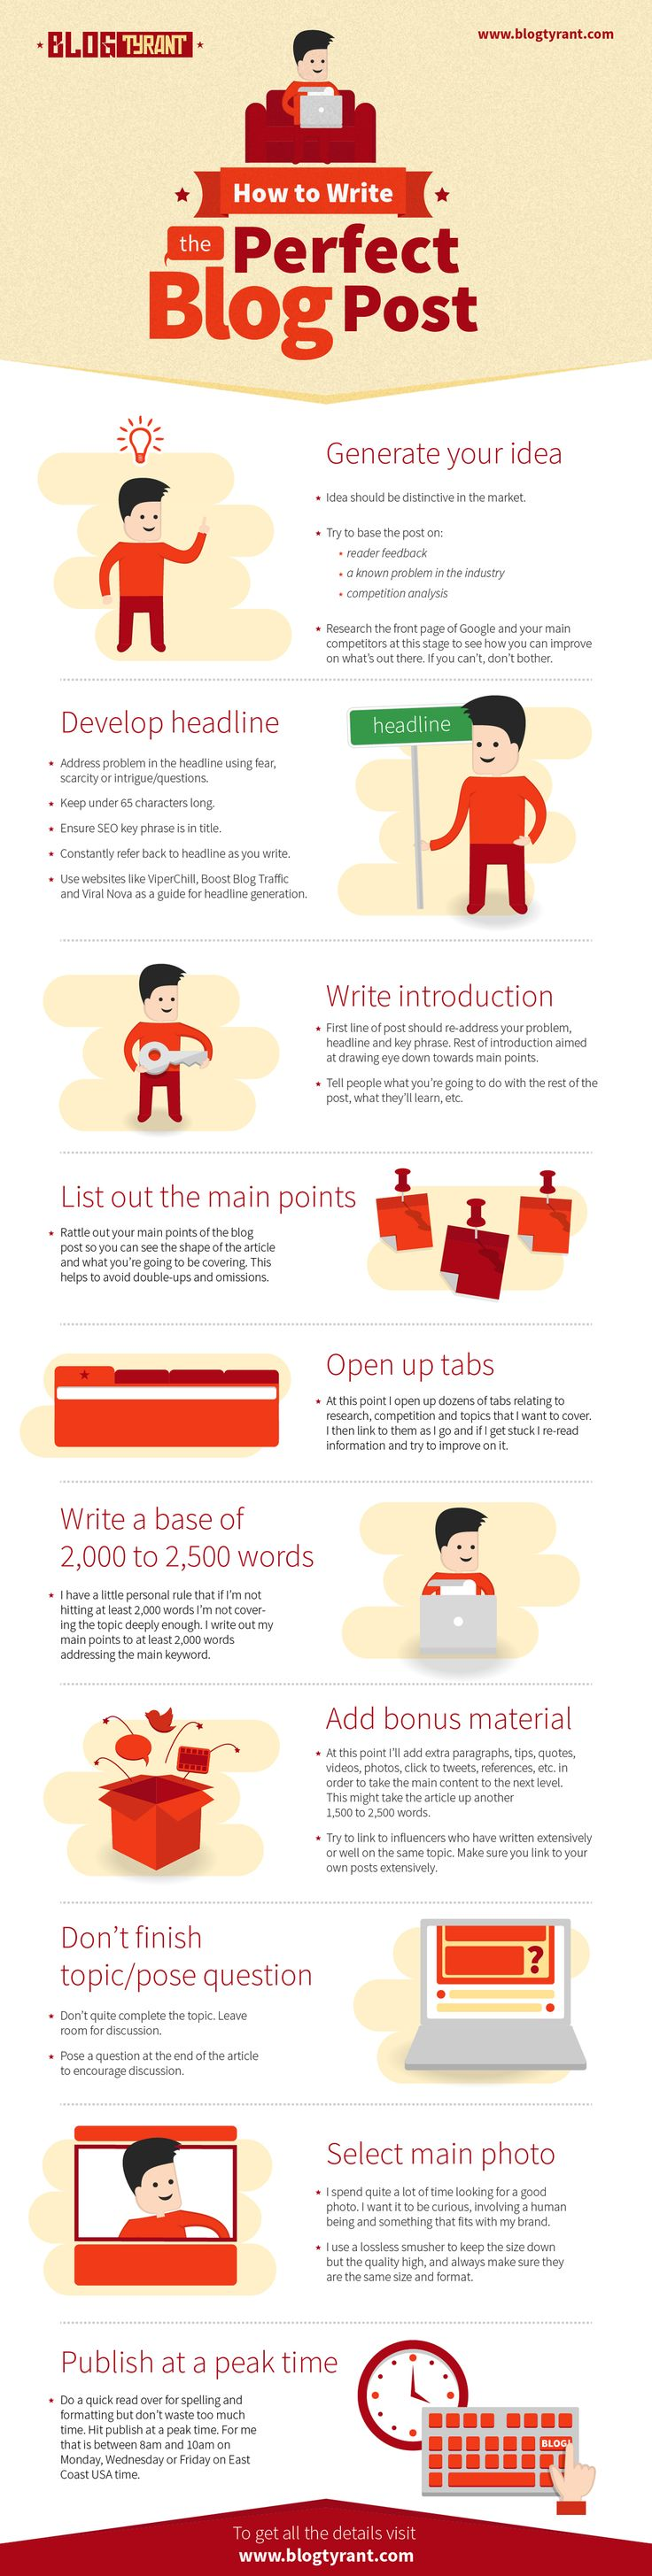 How to Write the Perfect Blog Post: A Complete Guide to Copy - Infographic by @blogtyrant